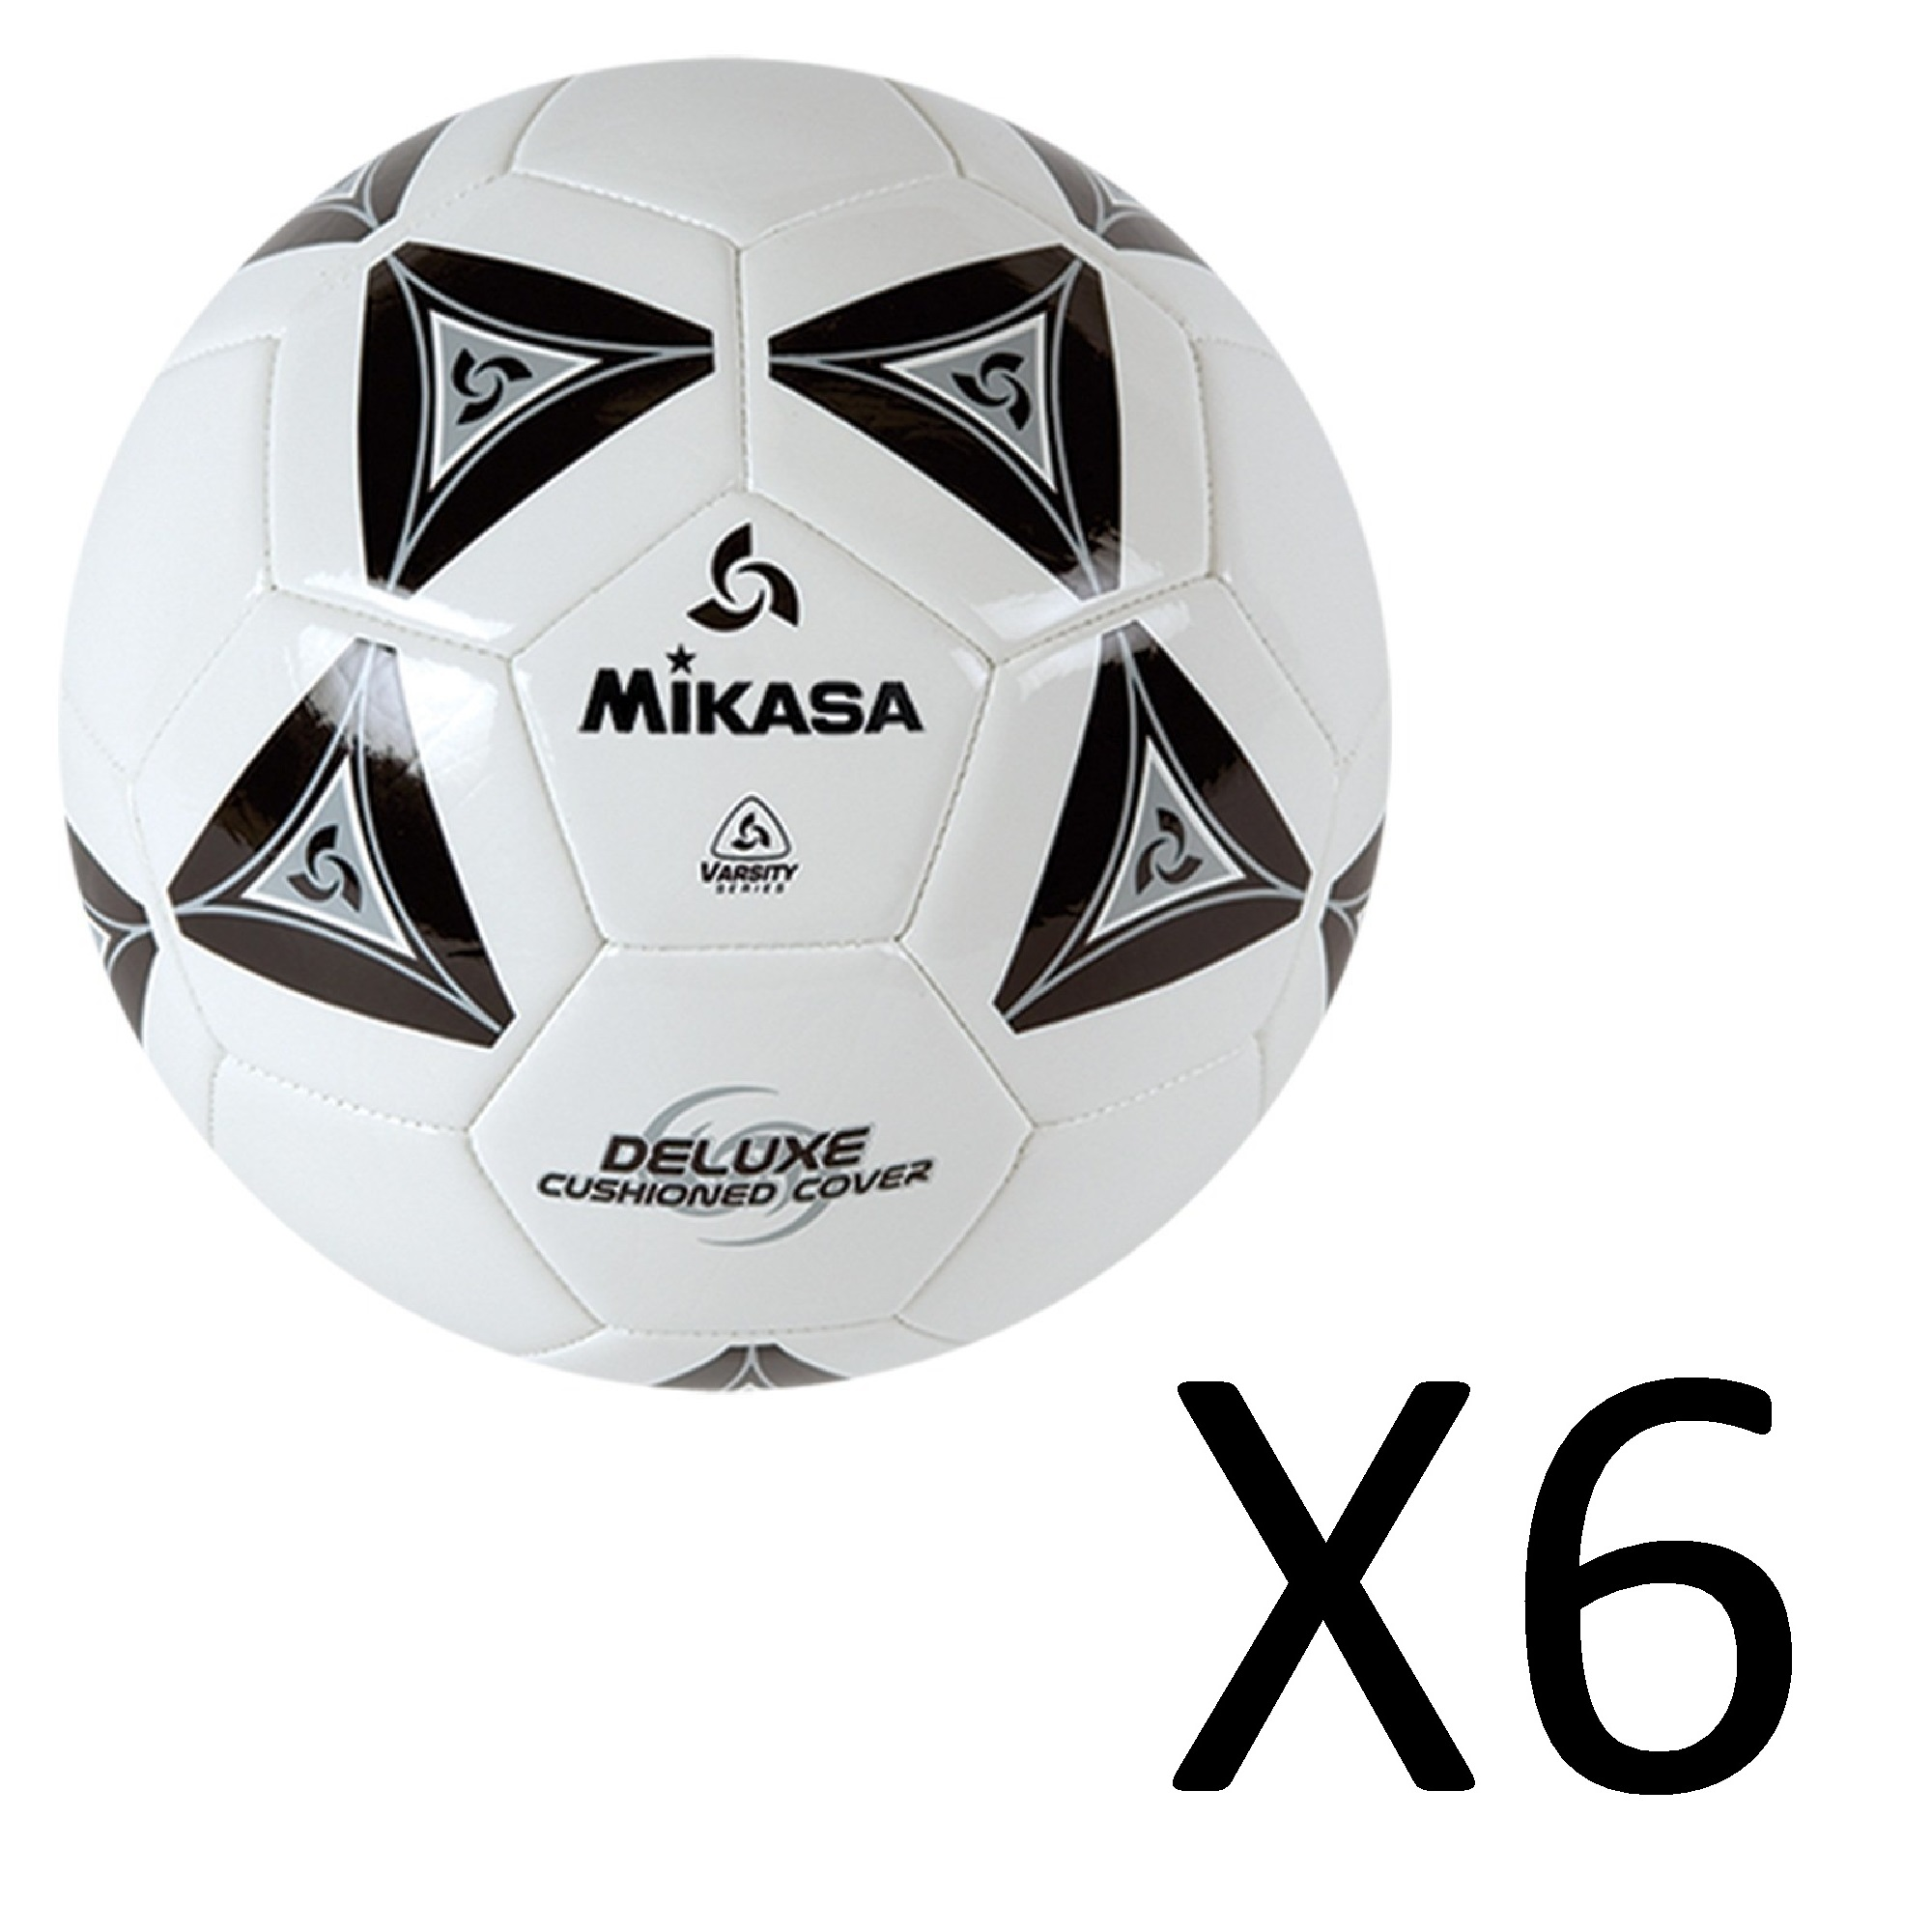 d2d68570c Football Equipment Mikasa Official Goal Master Soccer Football Ball Size 5  Yellow w/ Black 6-Pack